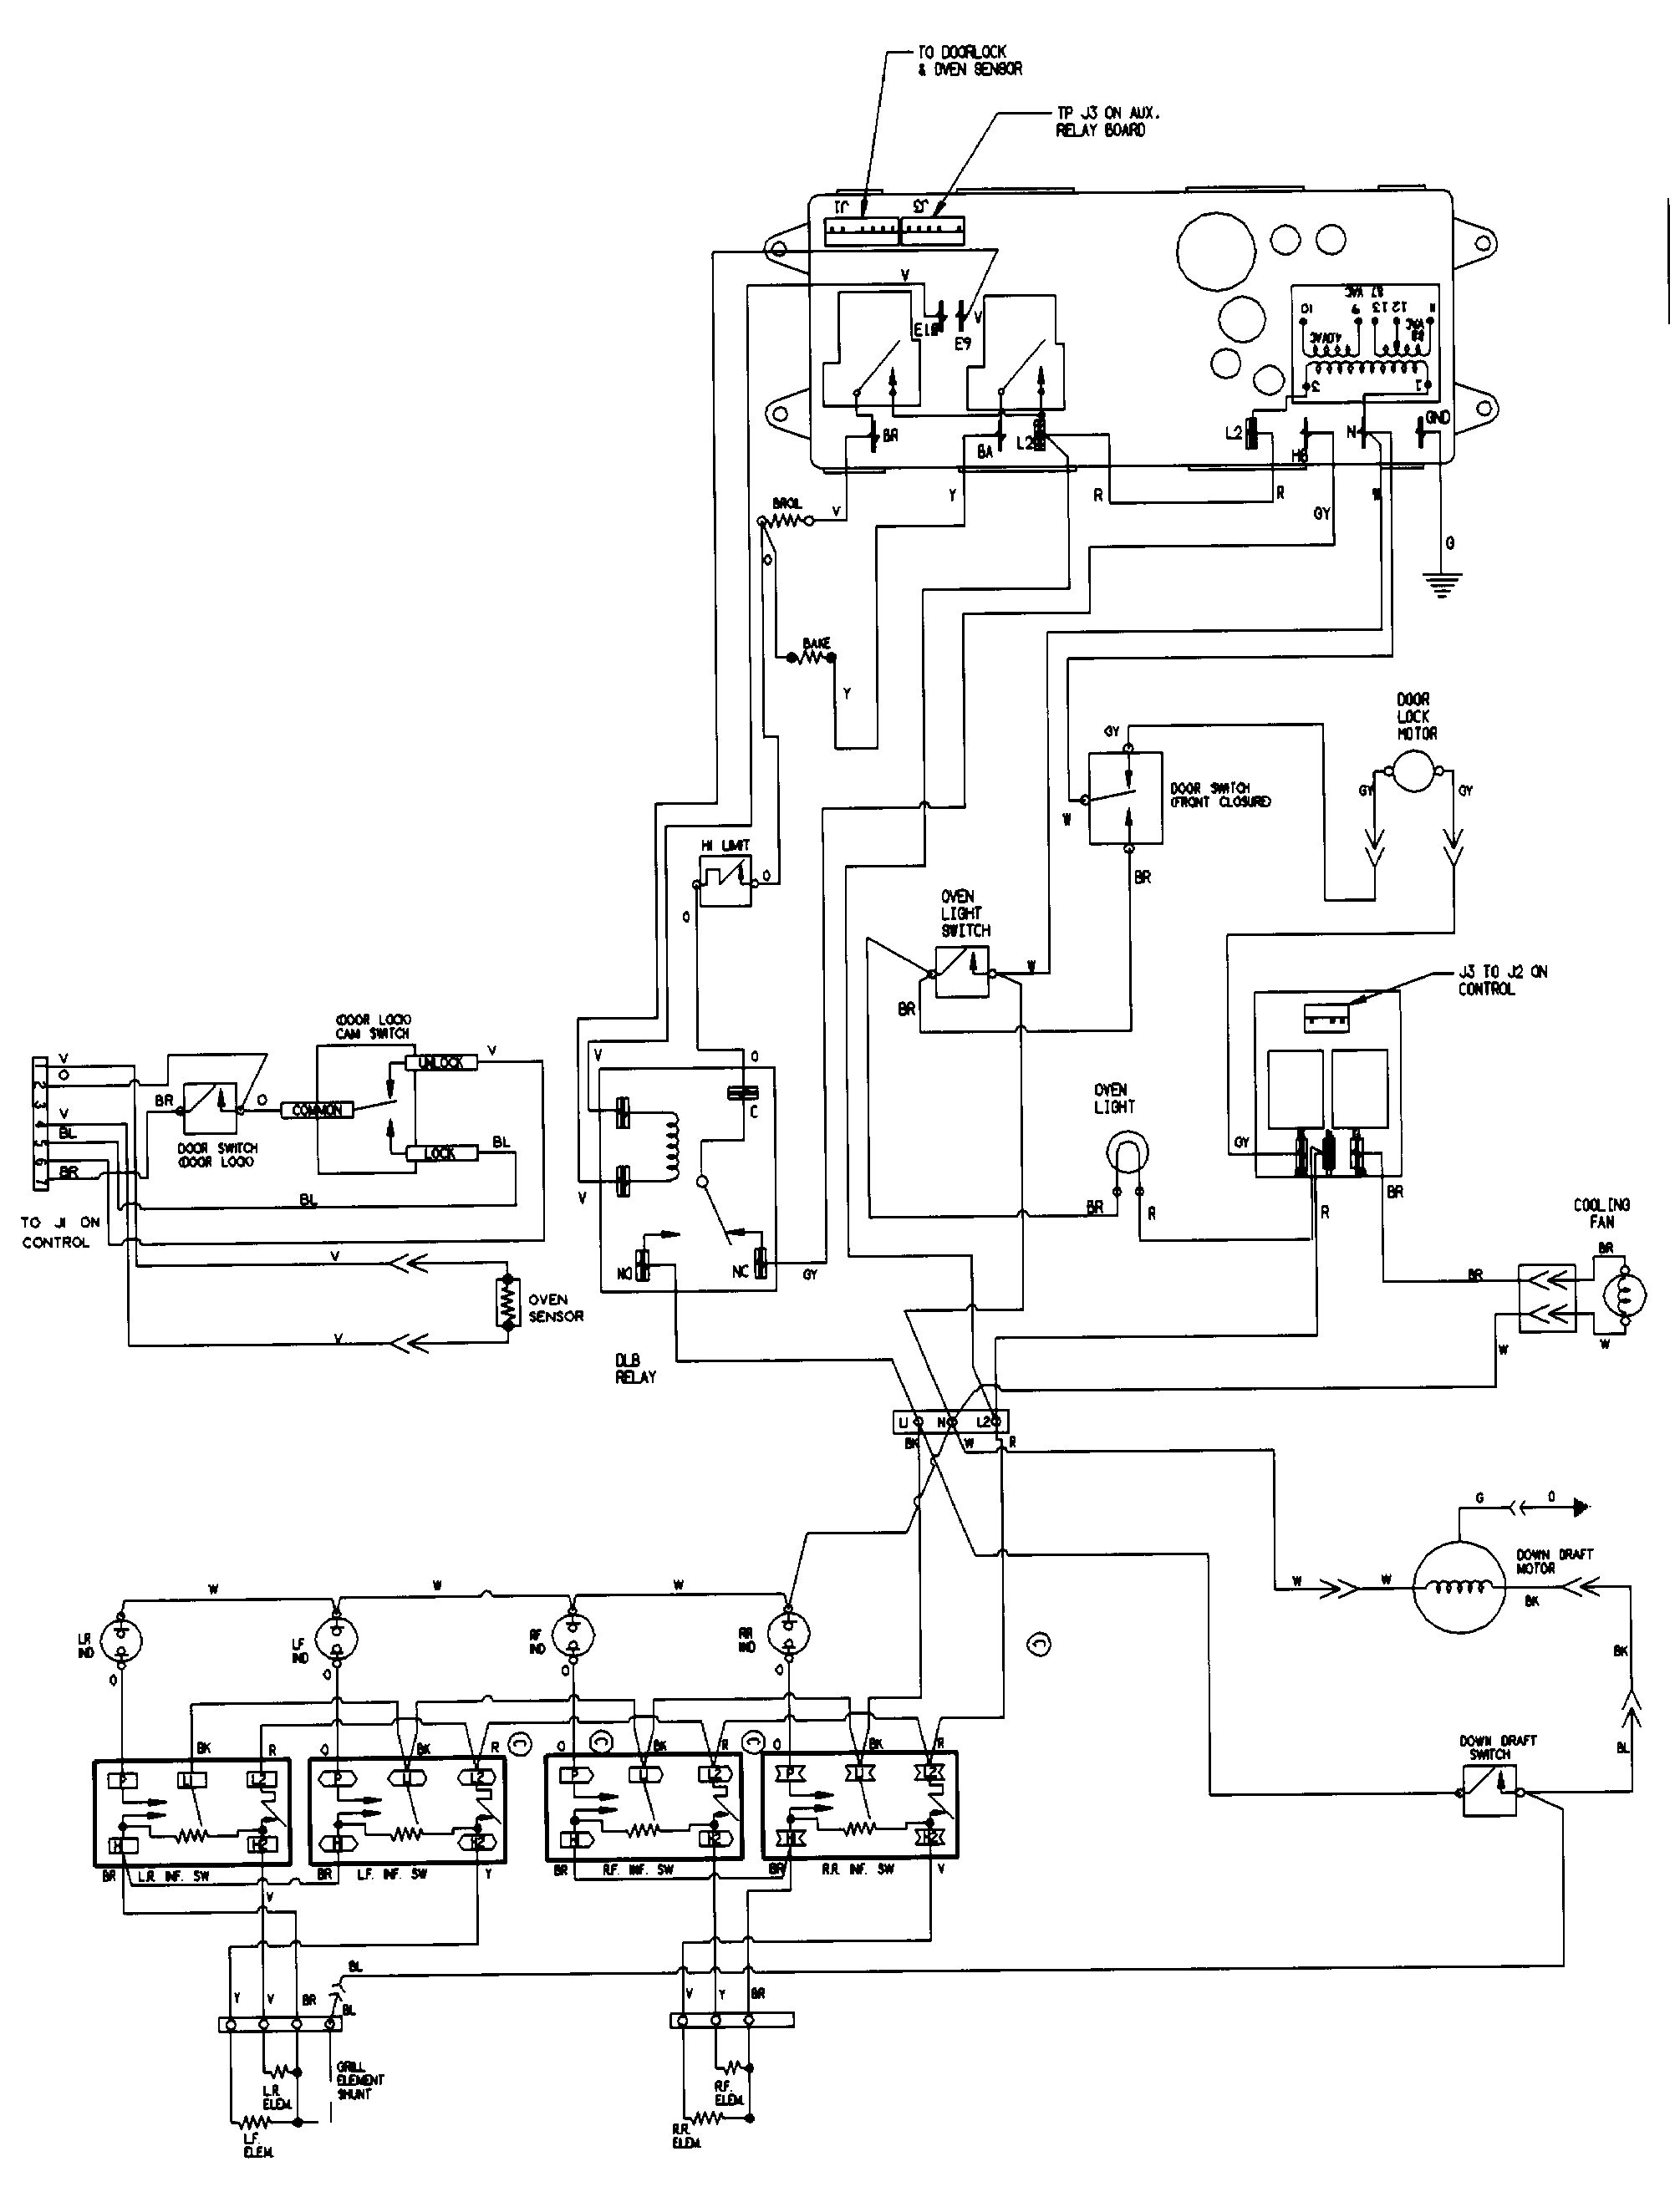 wiring information sve47100bc wc parts?resize\\\=665%2C866\\\&ssl\\\=1 diagrams 788942 imperial fryer wiring diagram parts town imperial fryer ifs-40 wiring diagram at n-0.co